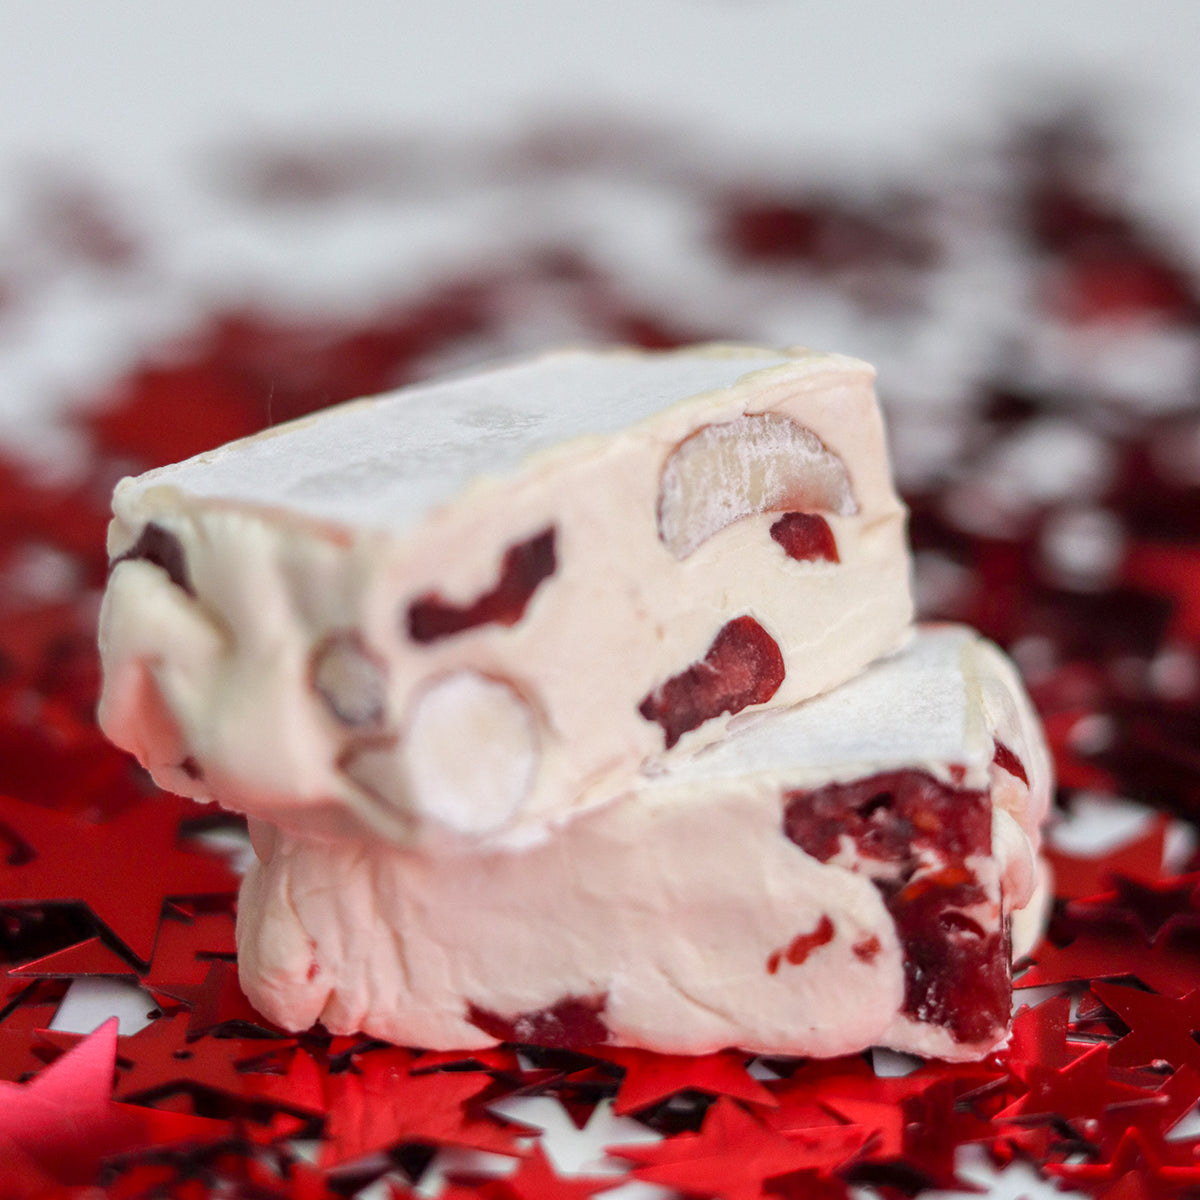 Roasted Almond & Cranberry Nougat - 5.29oz Gable Gift Box